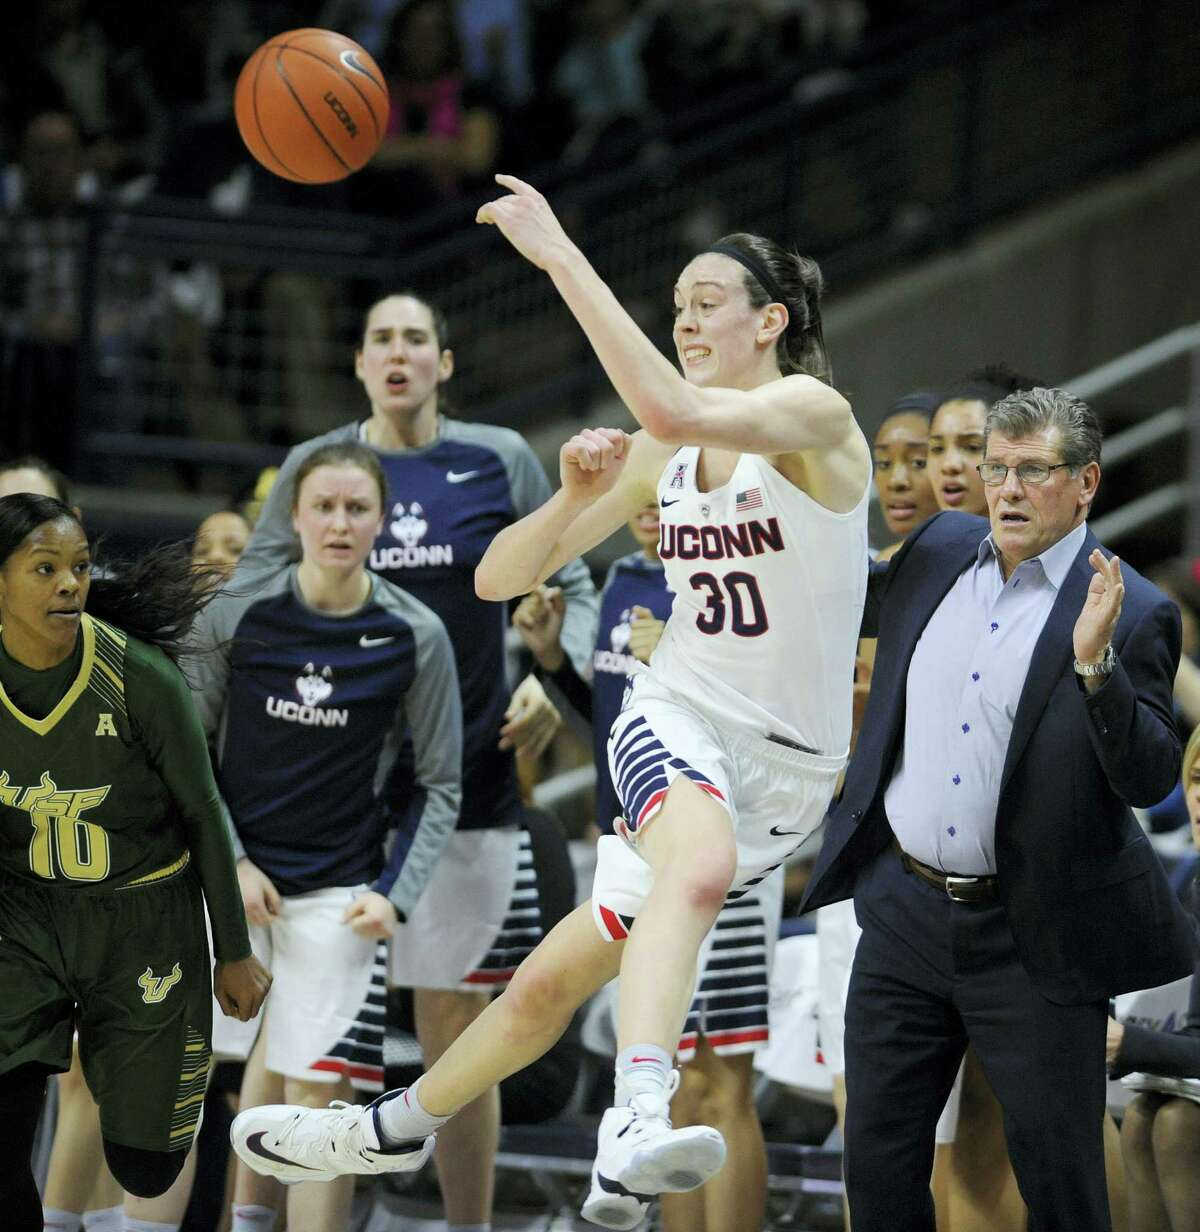 Breanna Stewart and the UConn women's basketball team will face East Carolina on Saturday in an AAC quarterfinal game.